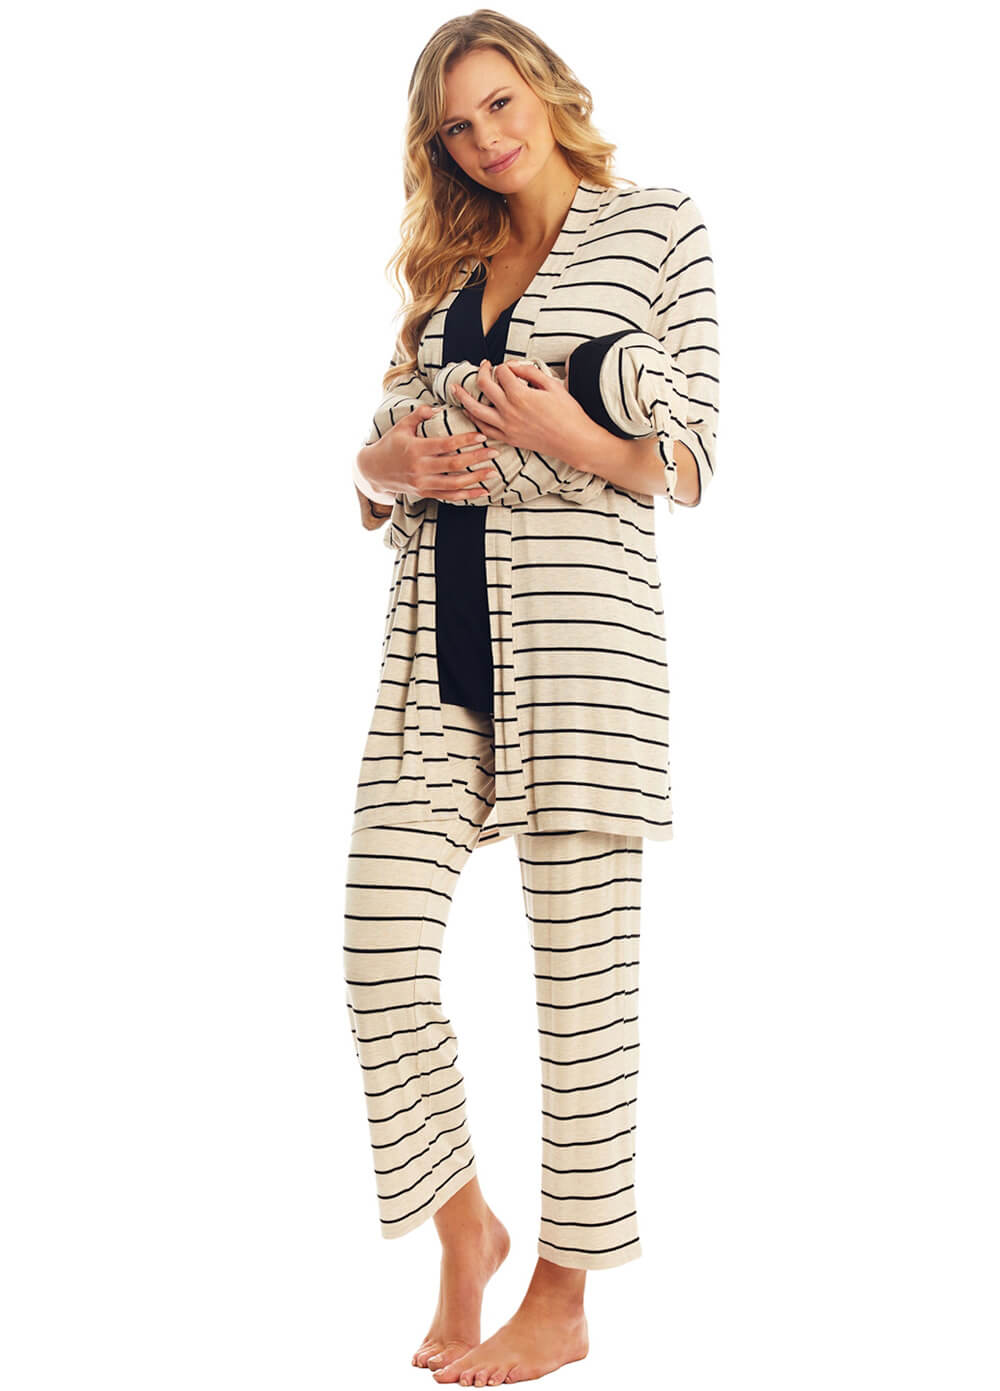 Everly Grey - Analise Mommy & Me PJ Gift Set in Sand Stripes